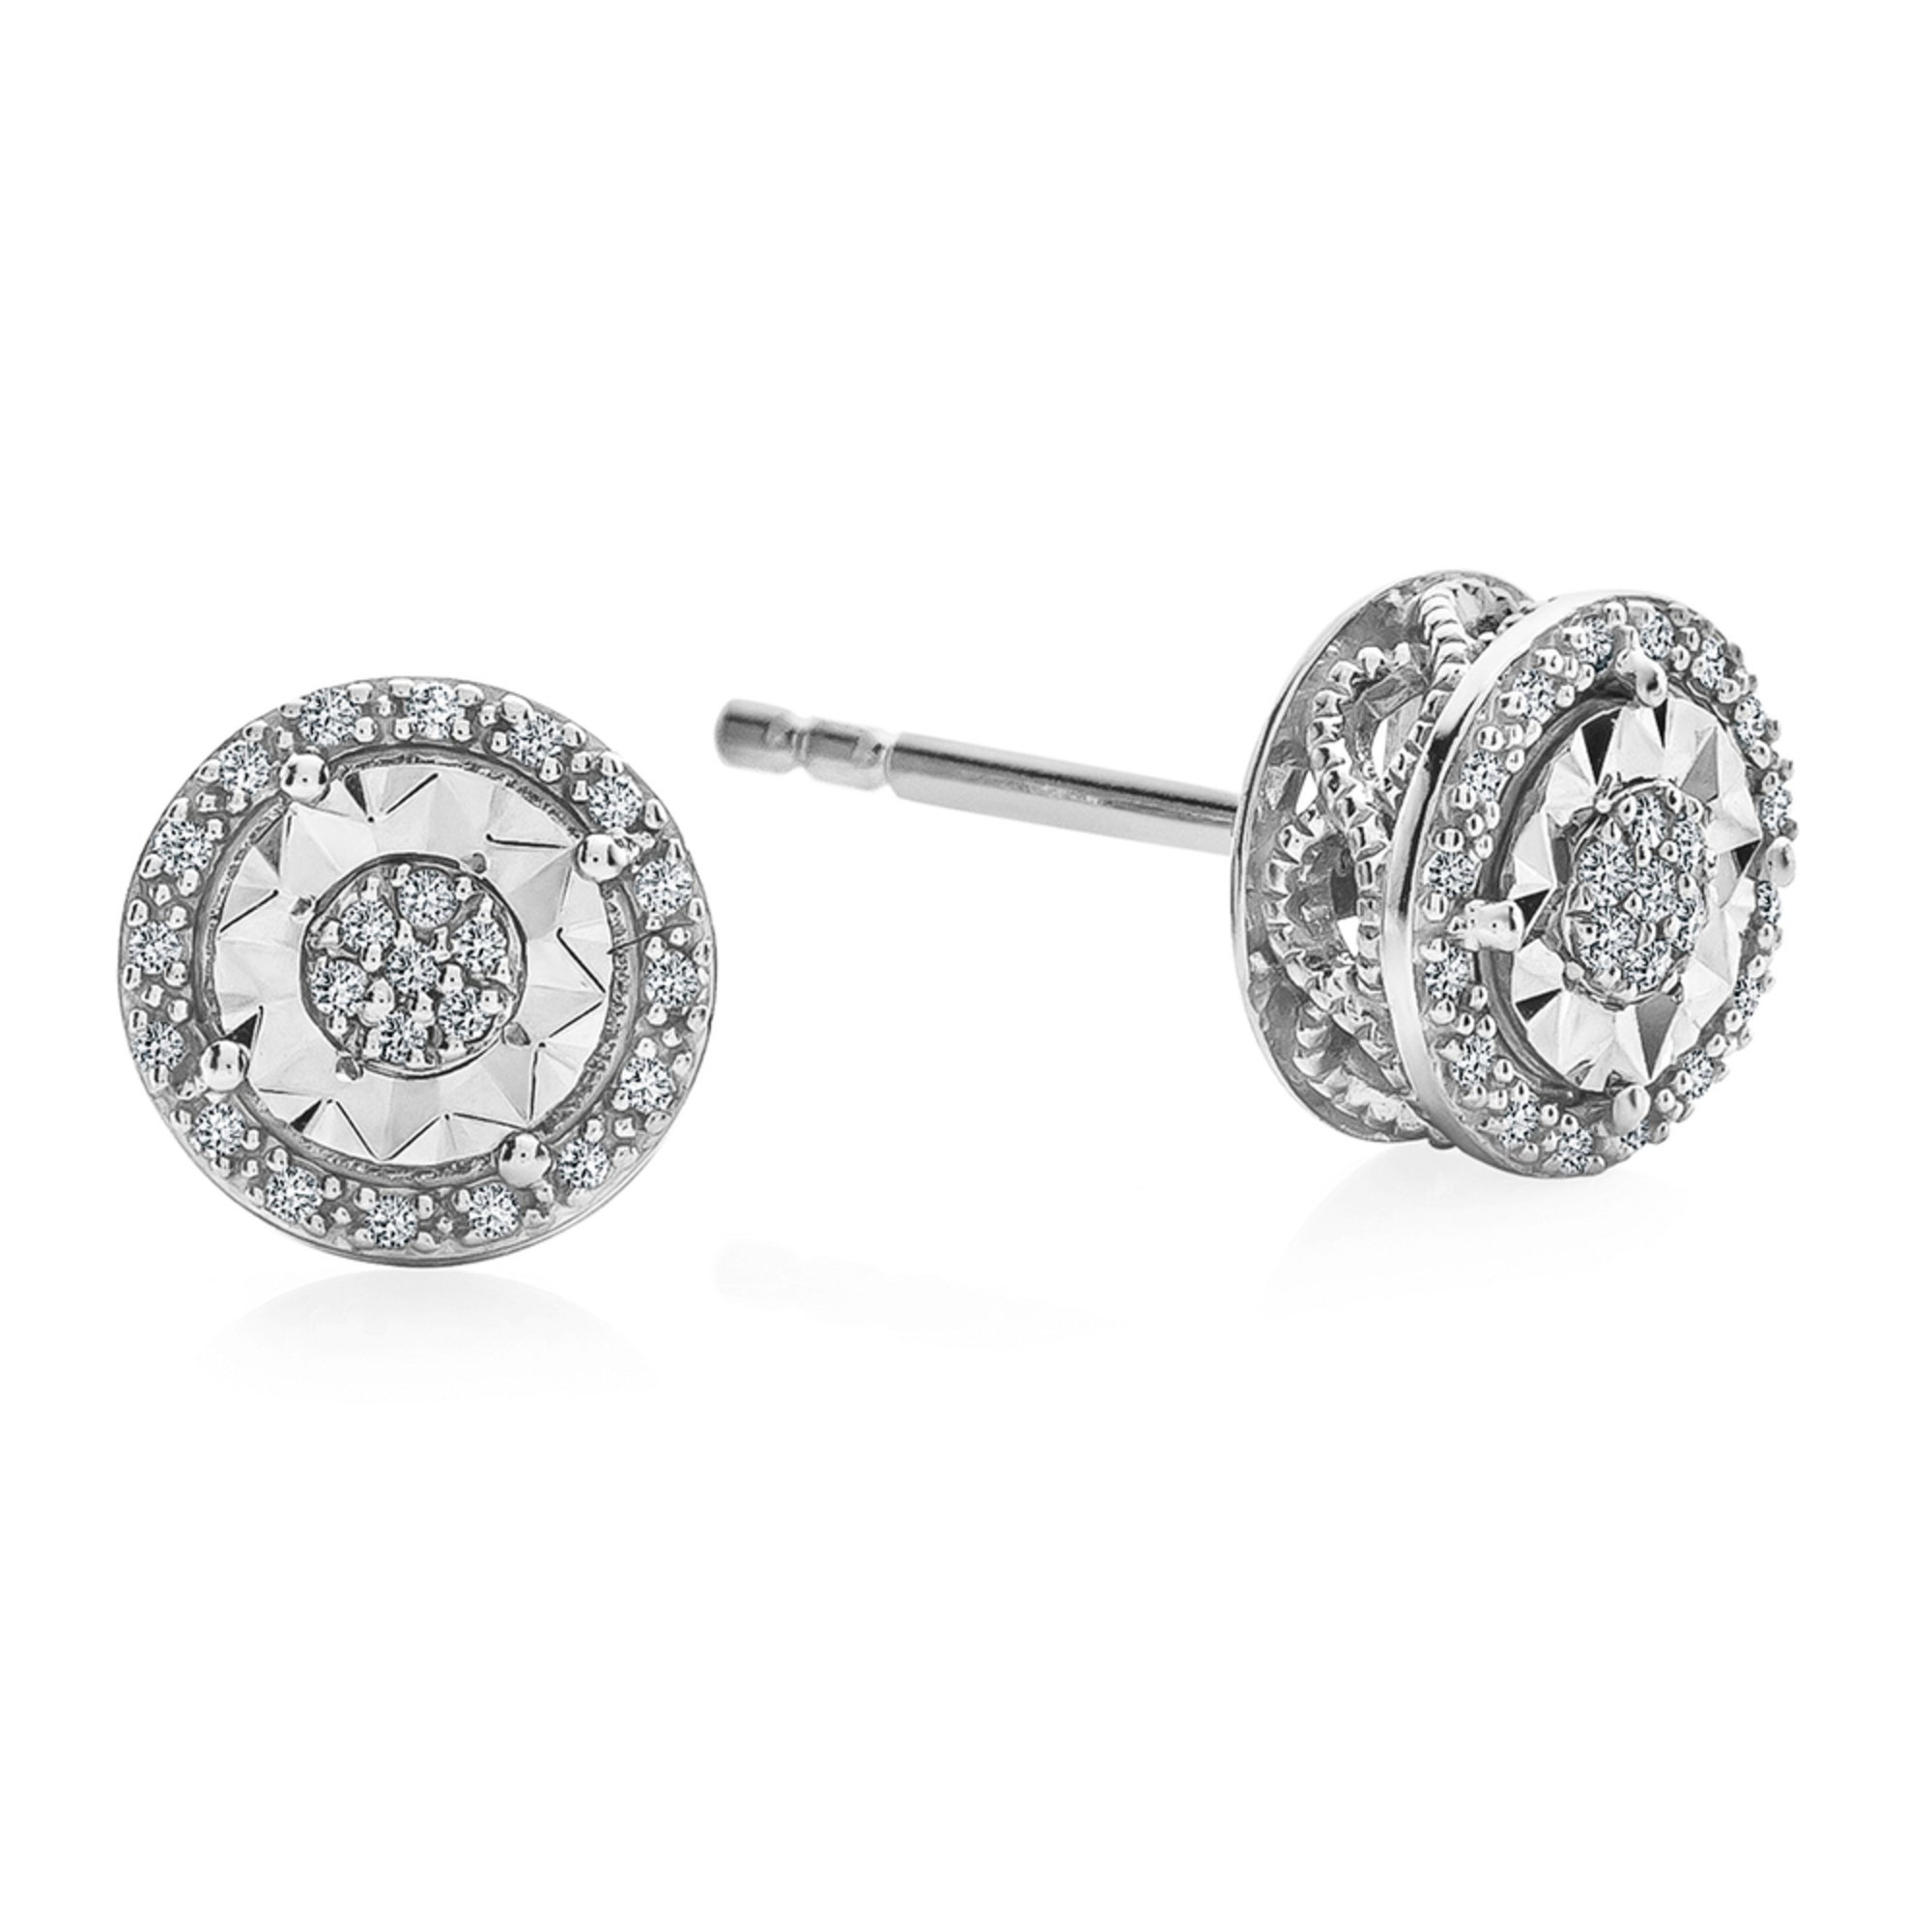 Diamond Miracle Framed Cer Stud Earrings 1 10 Cttw Sterling Silver